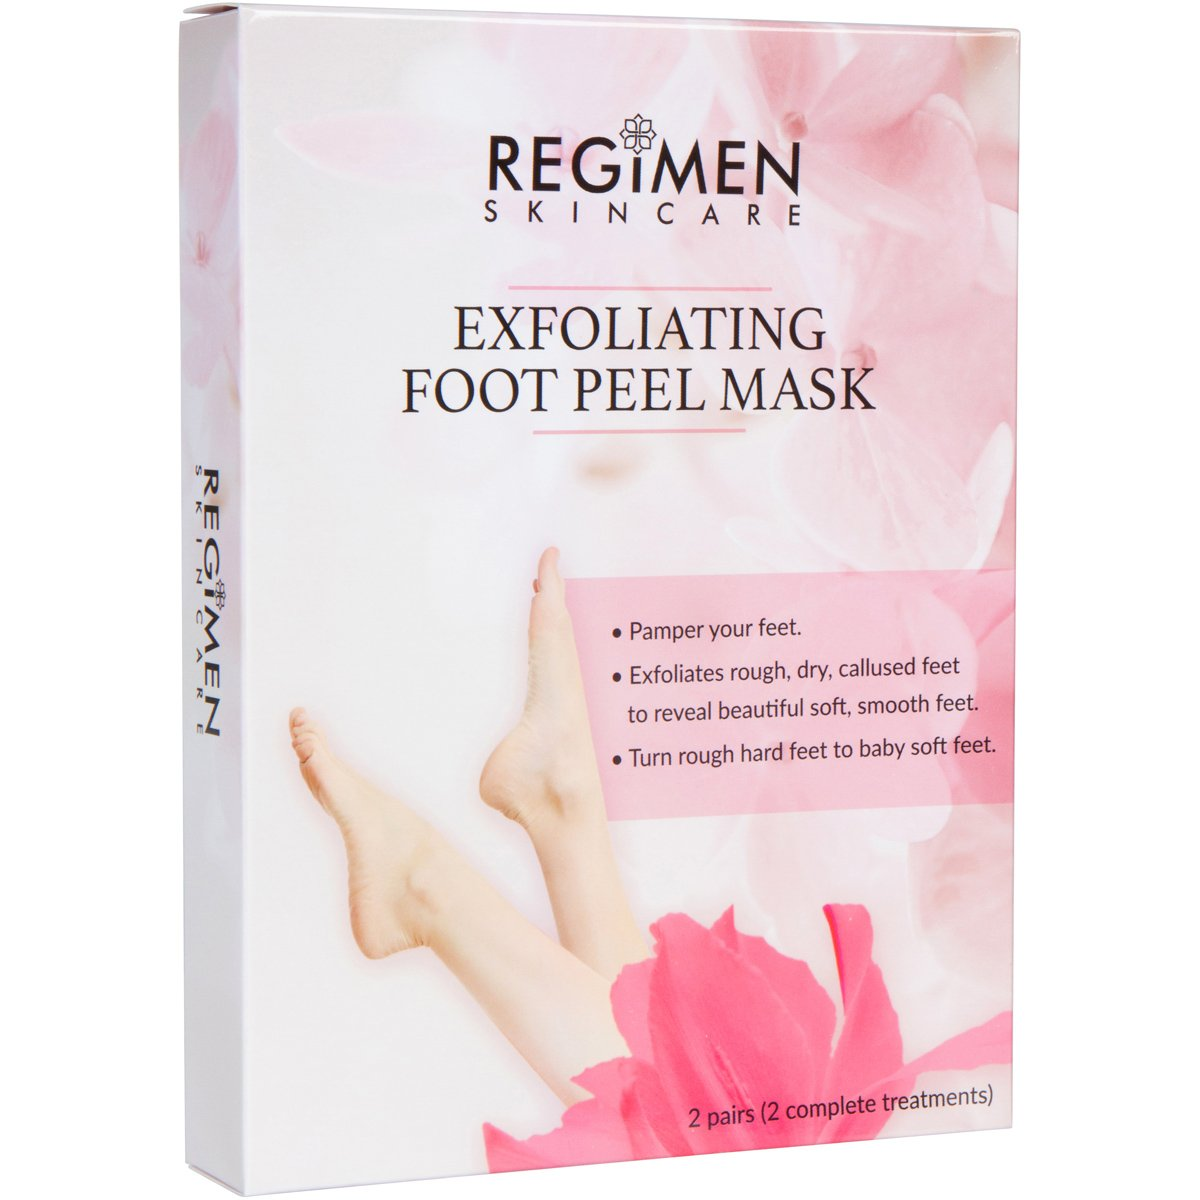 Foot Peeling Mask -2 Pairs Exfoliating Foot Peeling Socks -Foot Calluses and Dead Skin Remover, Smooth Baby Soft Feet in 1-2 Weeks, Foot Spa for Dry Feet, For Men and Women Regimen Skincare